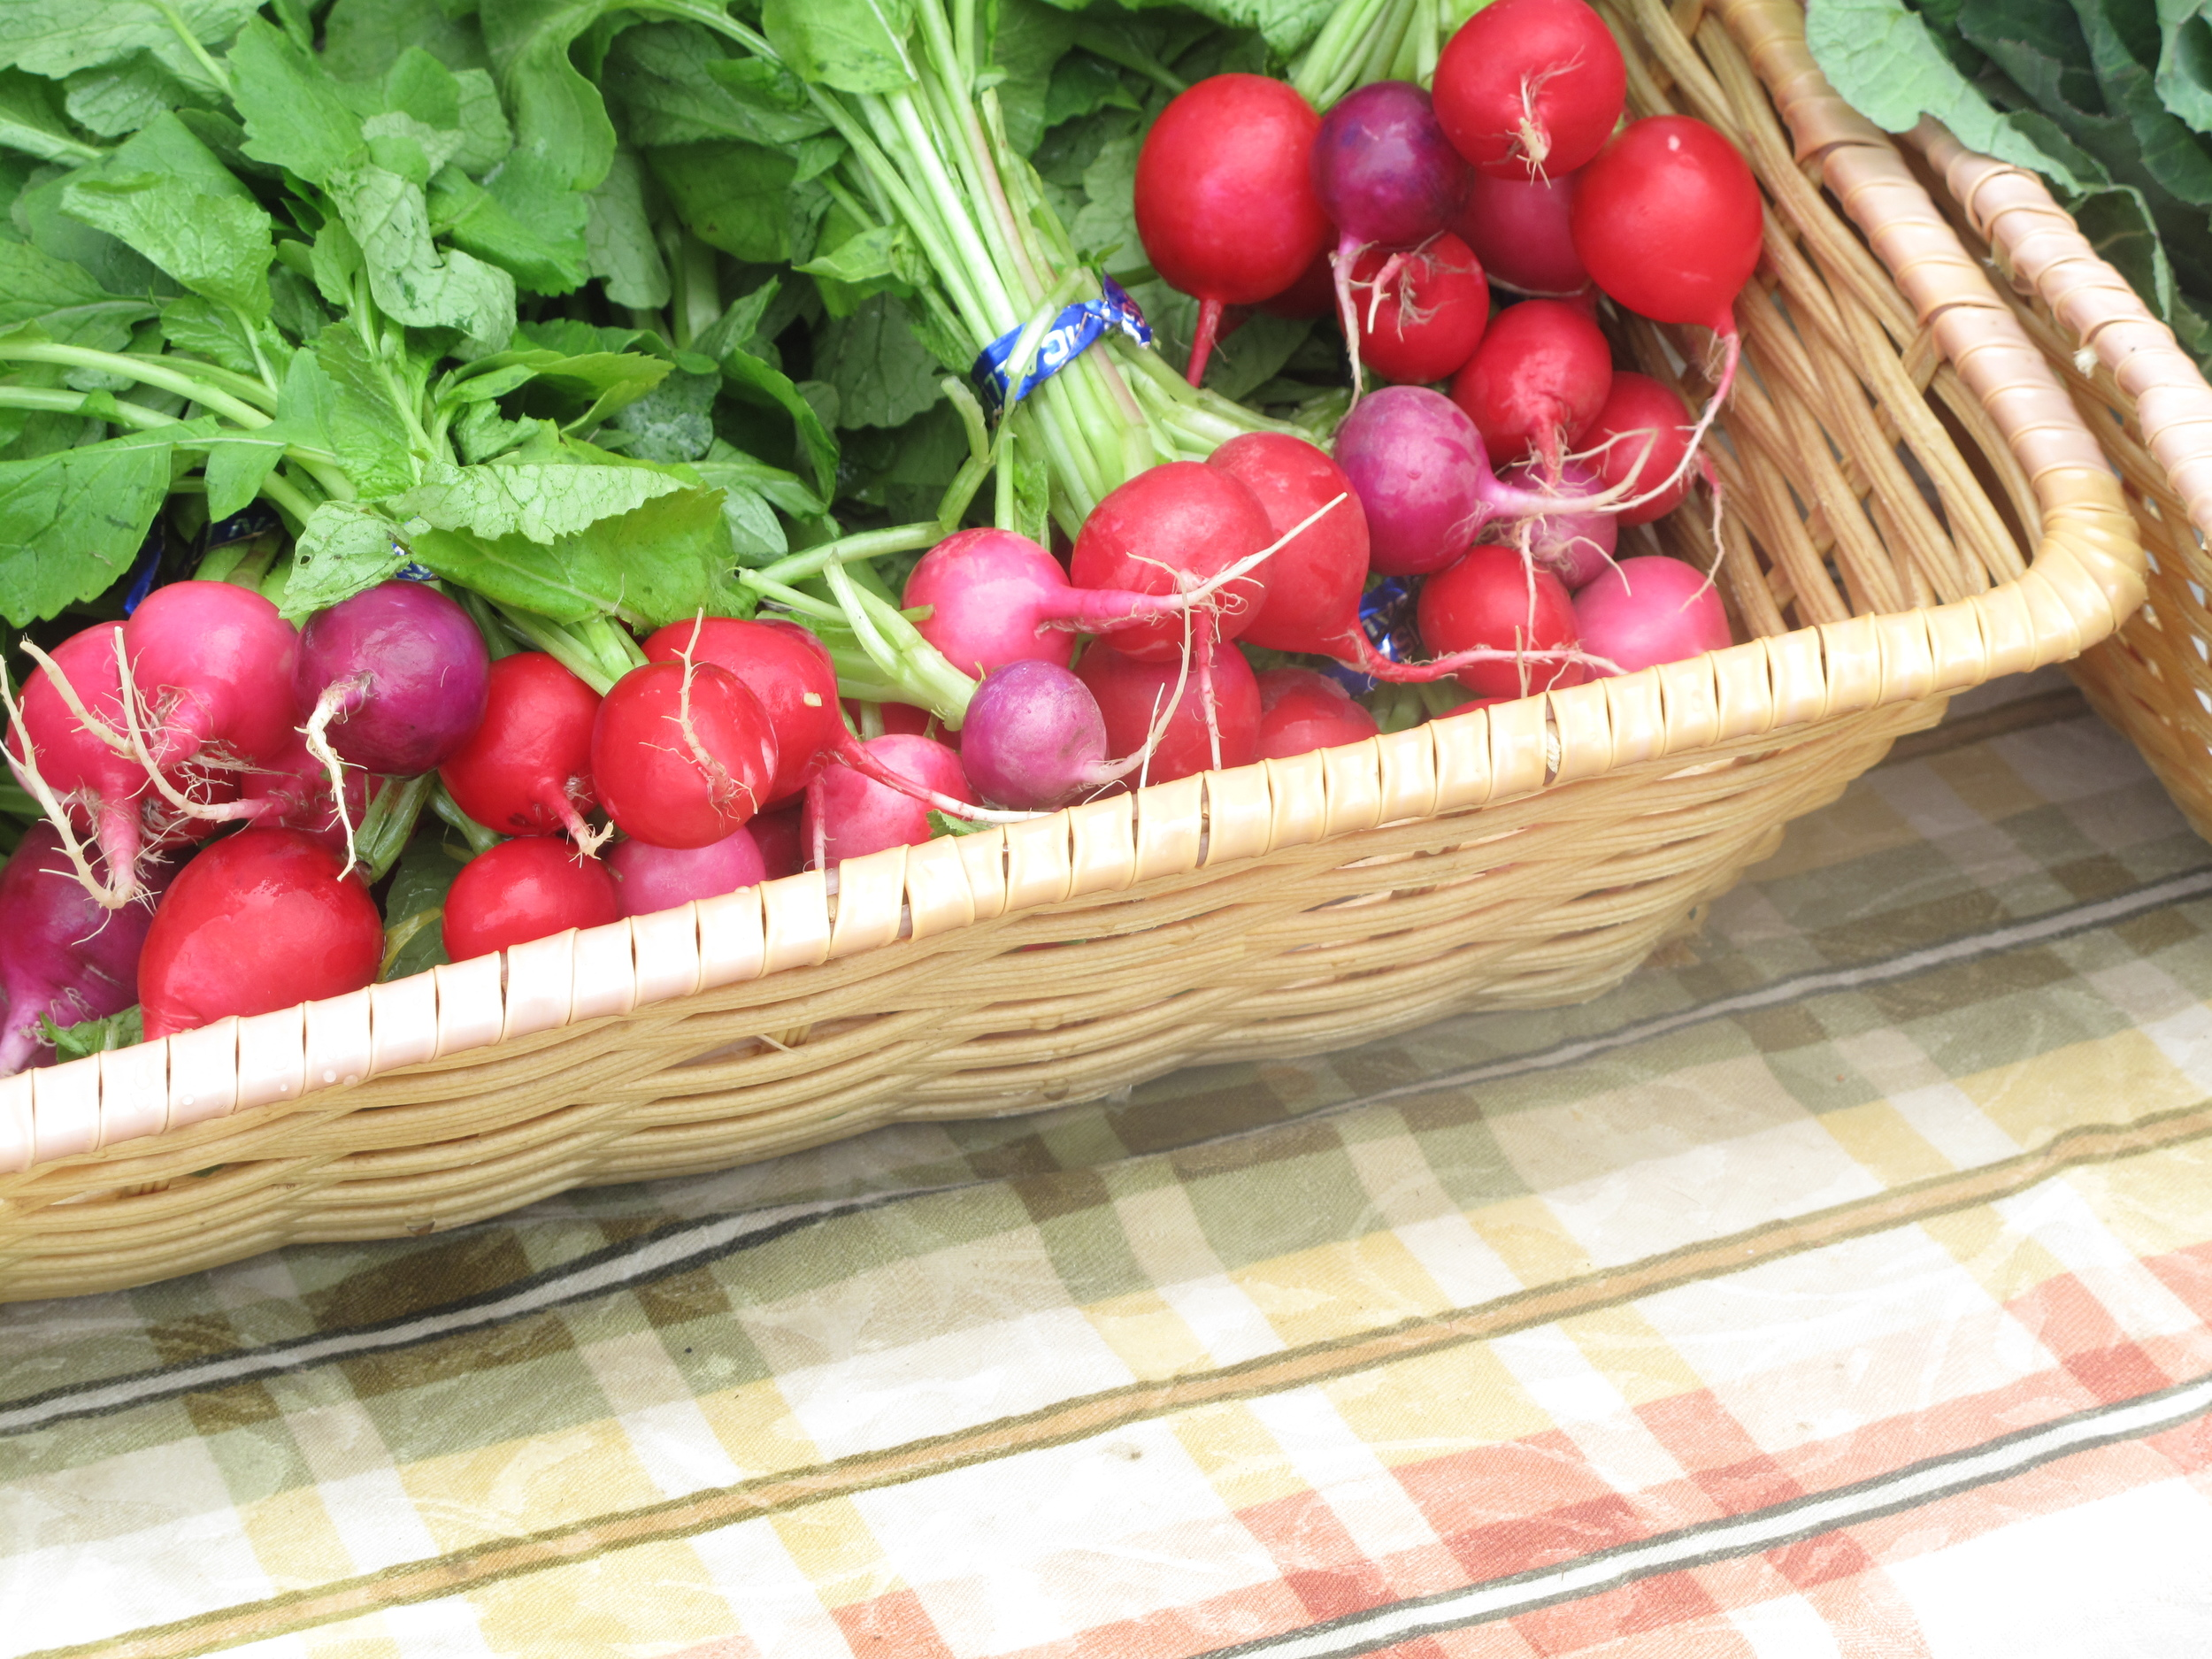 Homegrown radishes at the Fremont market Seattle.